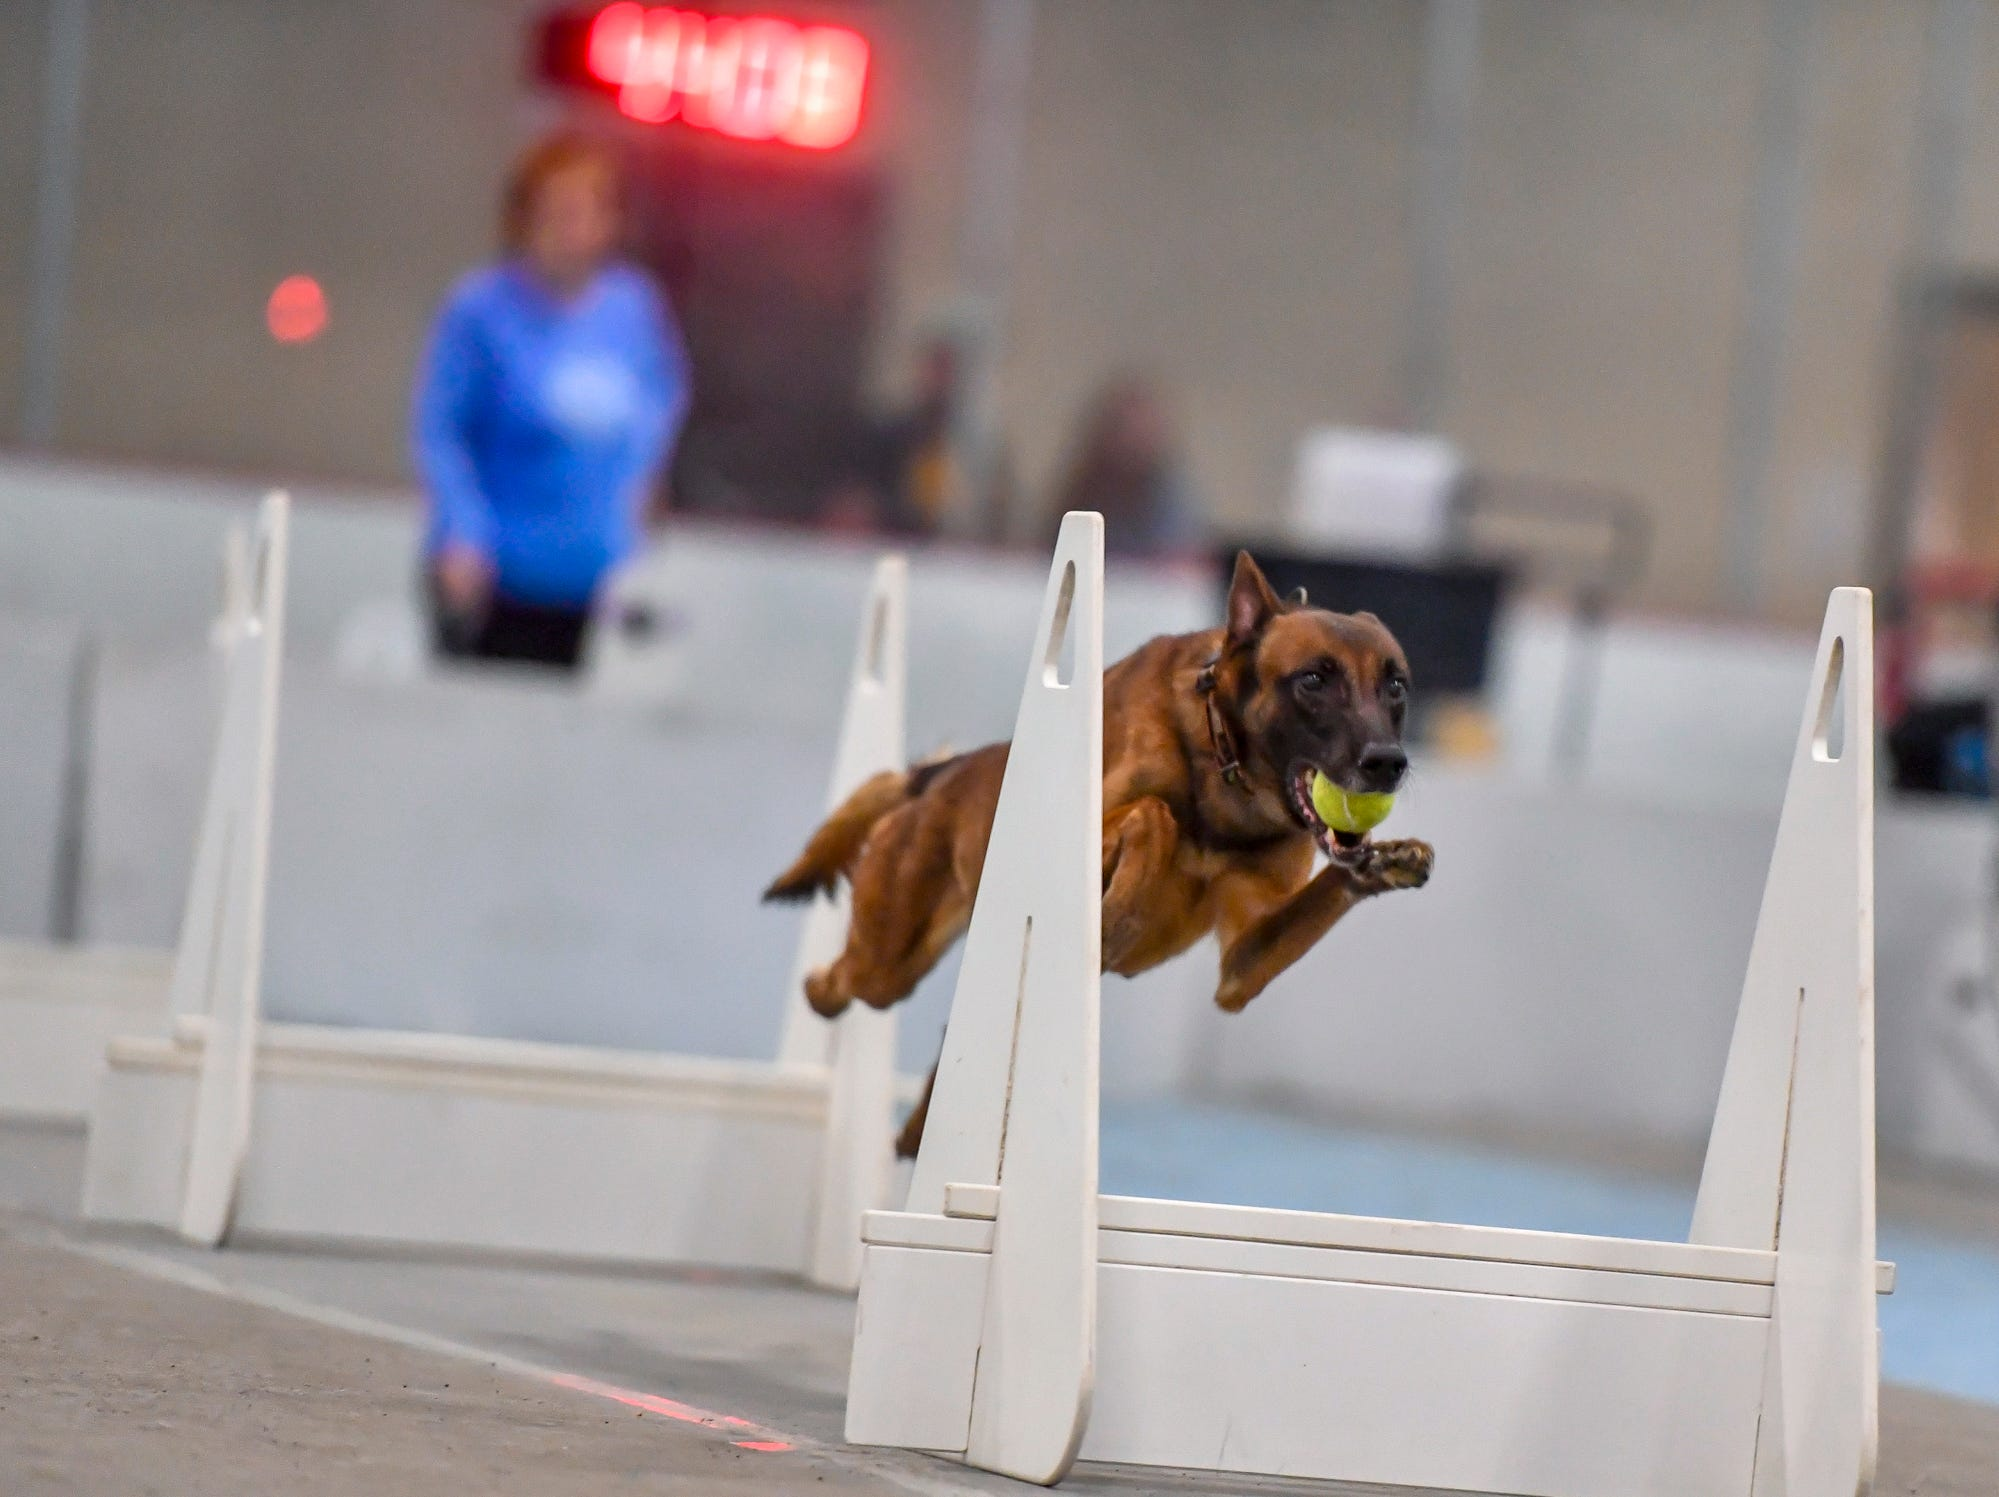 Vega, a Belgium malinois, clears a jump while heading to the finish line as more than 40 teams compete in the Clean Break Flyball tournament at the Yellow Breeches Sports Complex in New Cumberland, Sunday, April 7, 2019. John A. Pavoncello photo